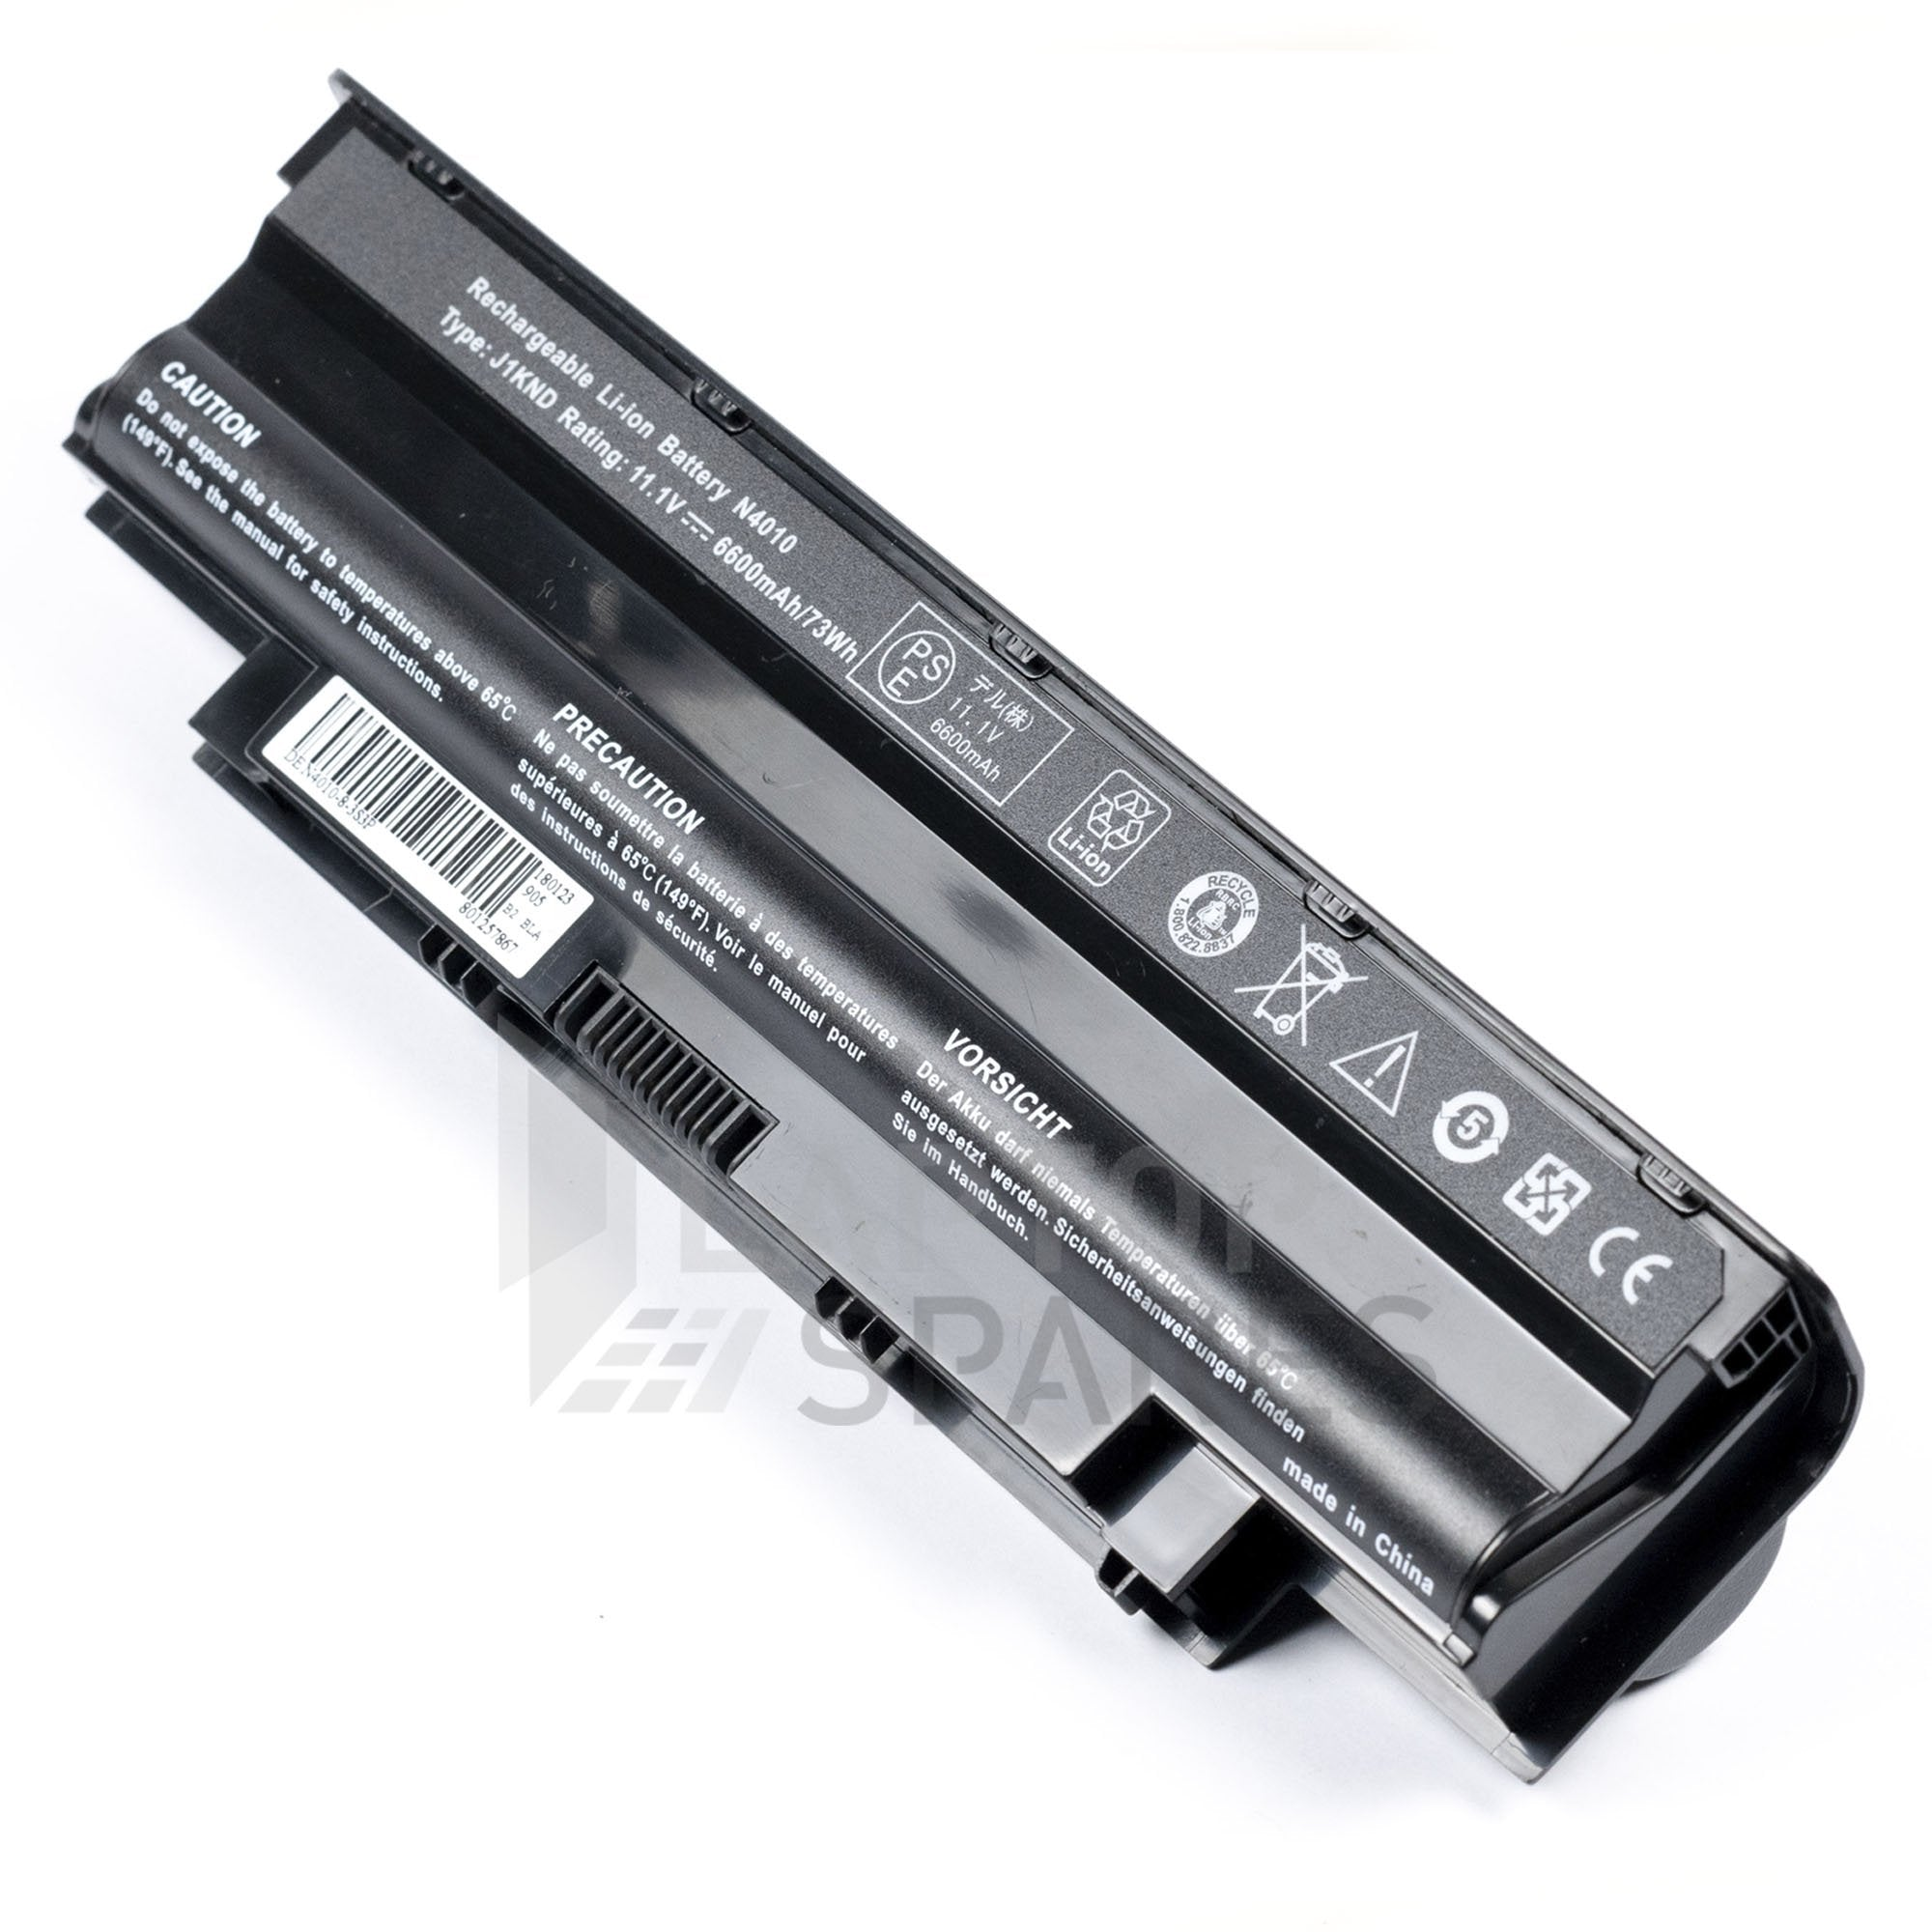 Dell Inspiron 15R 5010-D370HK 6600mAh 9 Cell Battery